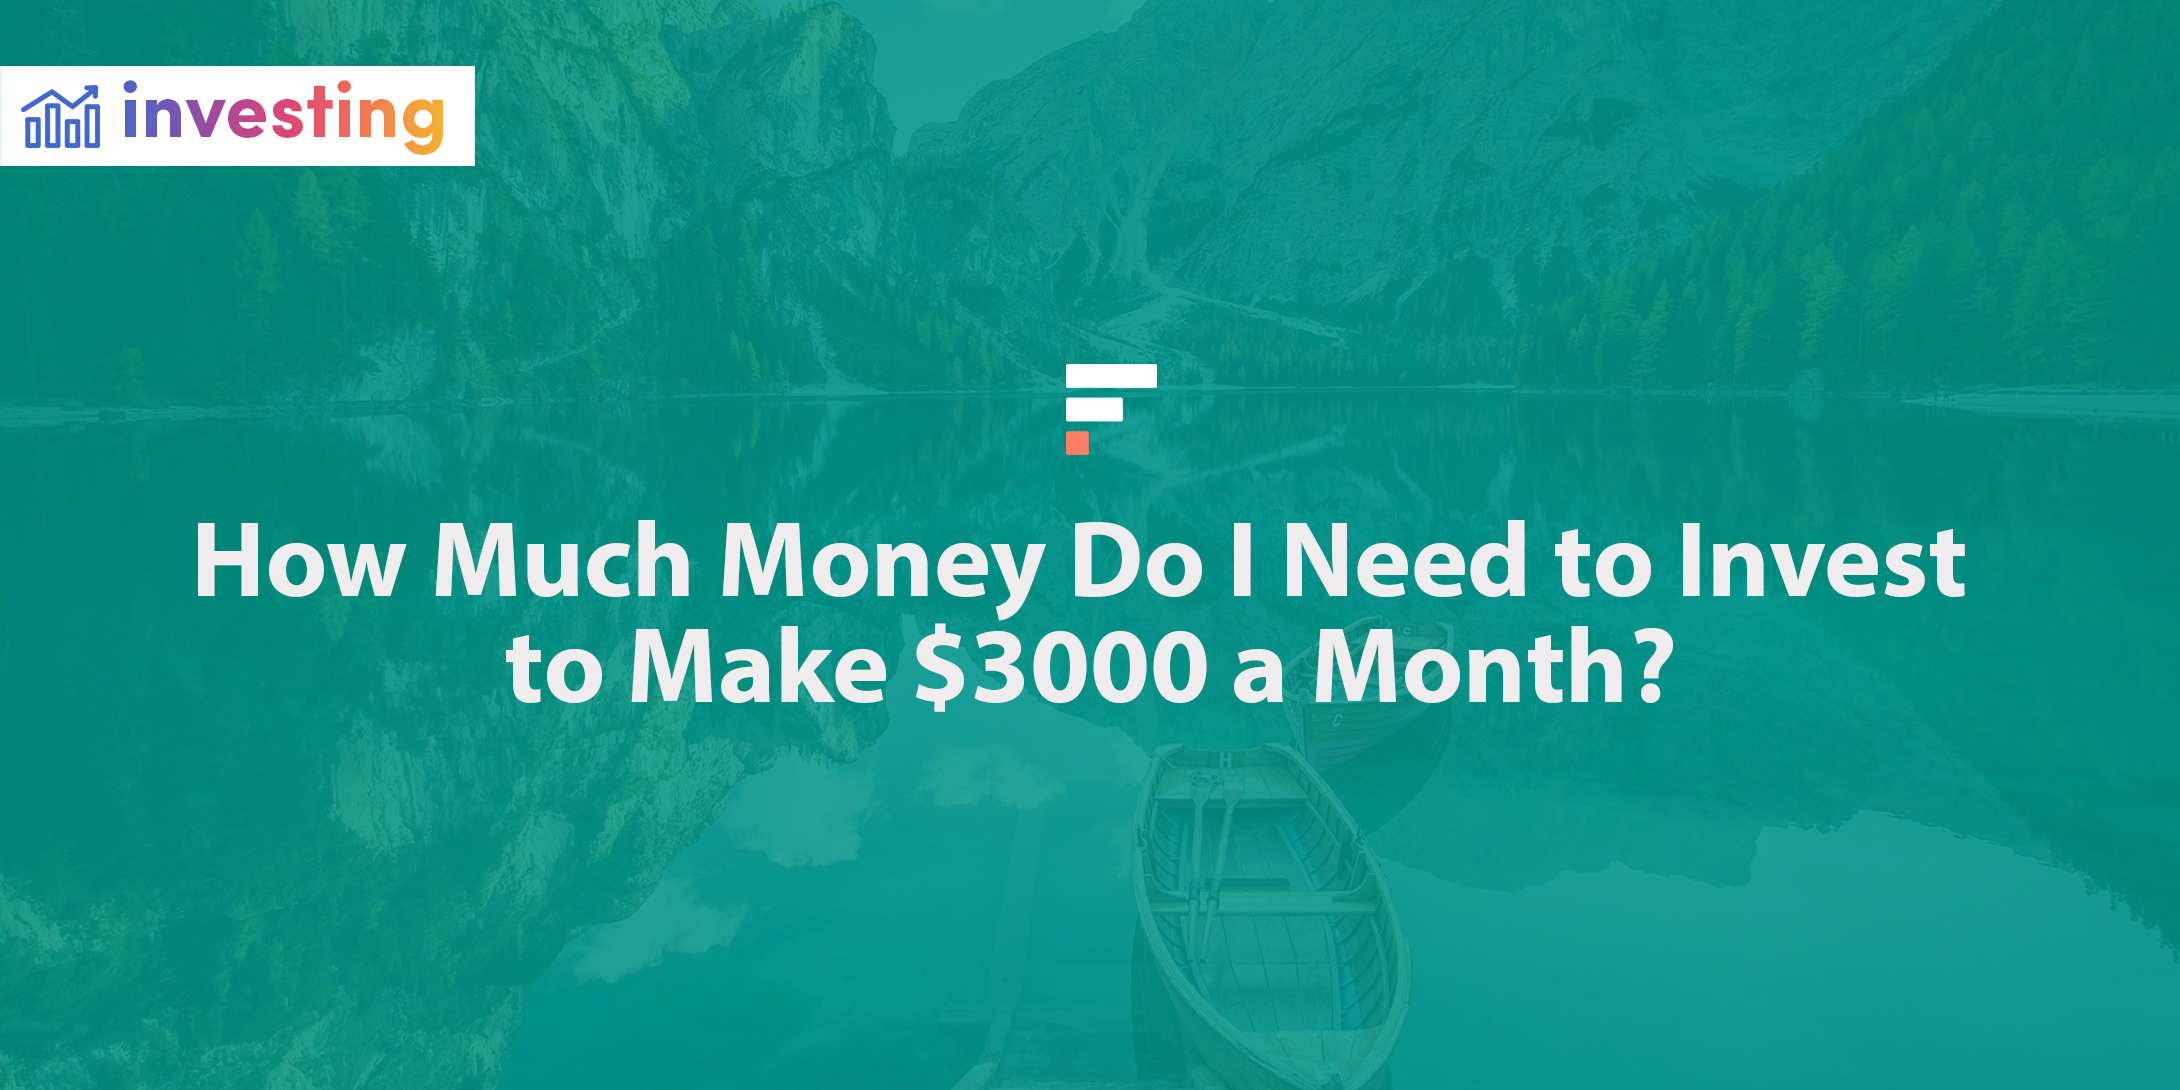 How Much Money Do I Need to Invest to Make $3000 a Month?